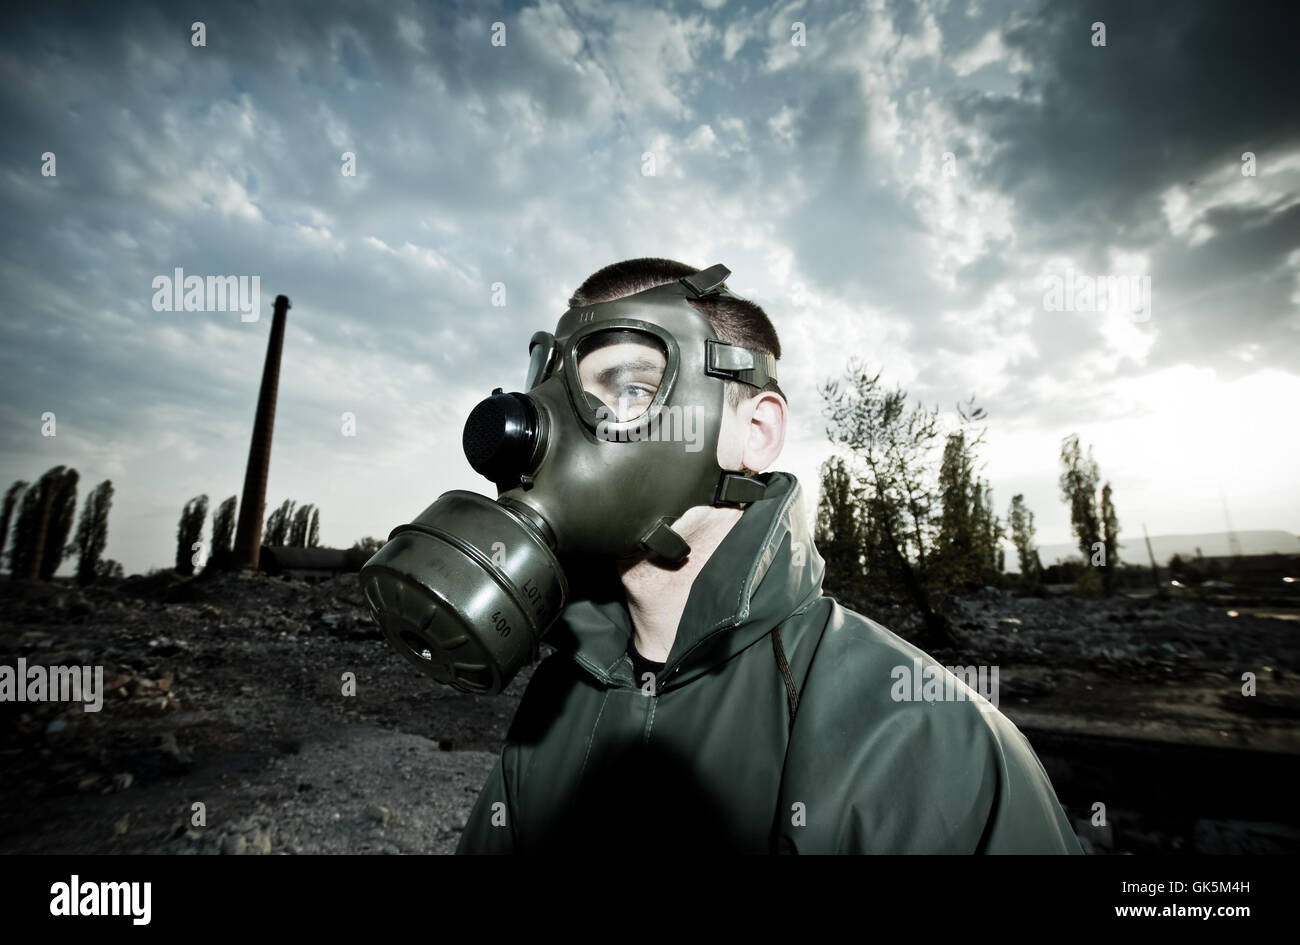 disaster respirator gas mask - Stock Image